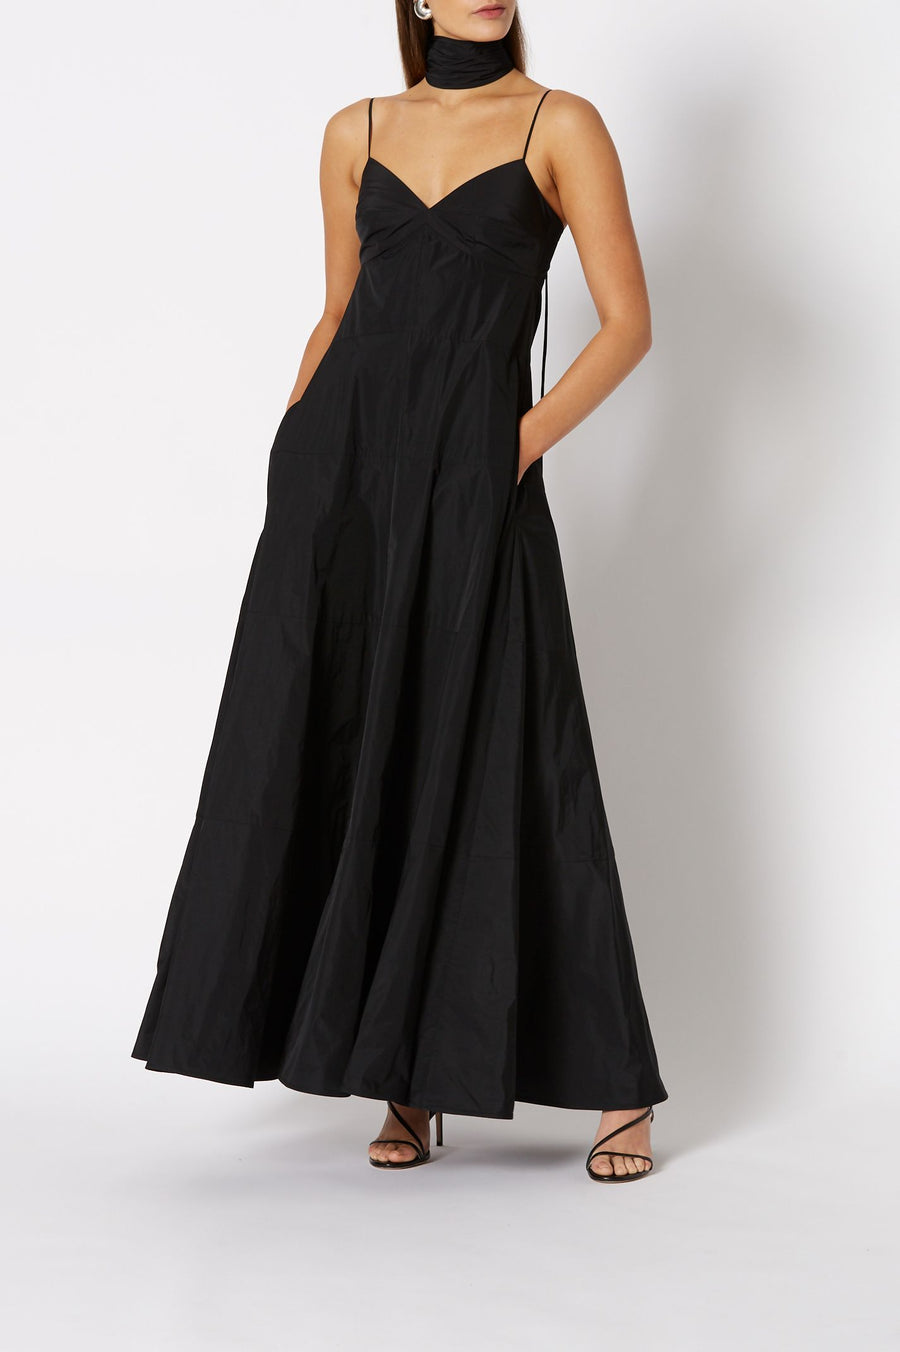 Taffeta Maxi Dress Black, Loose Fit, Maxi Length, Tiered ruffle Skirt, Front Slit, Front Pockets